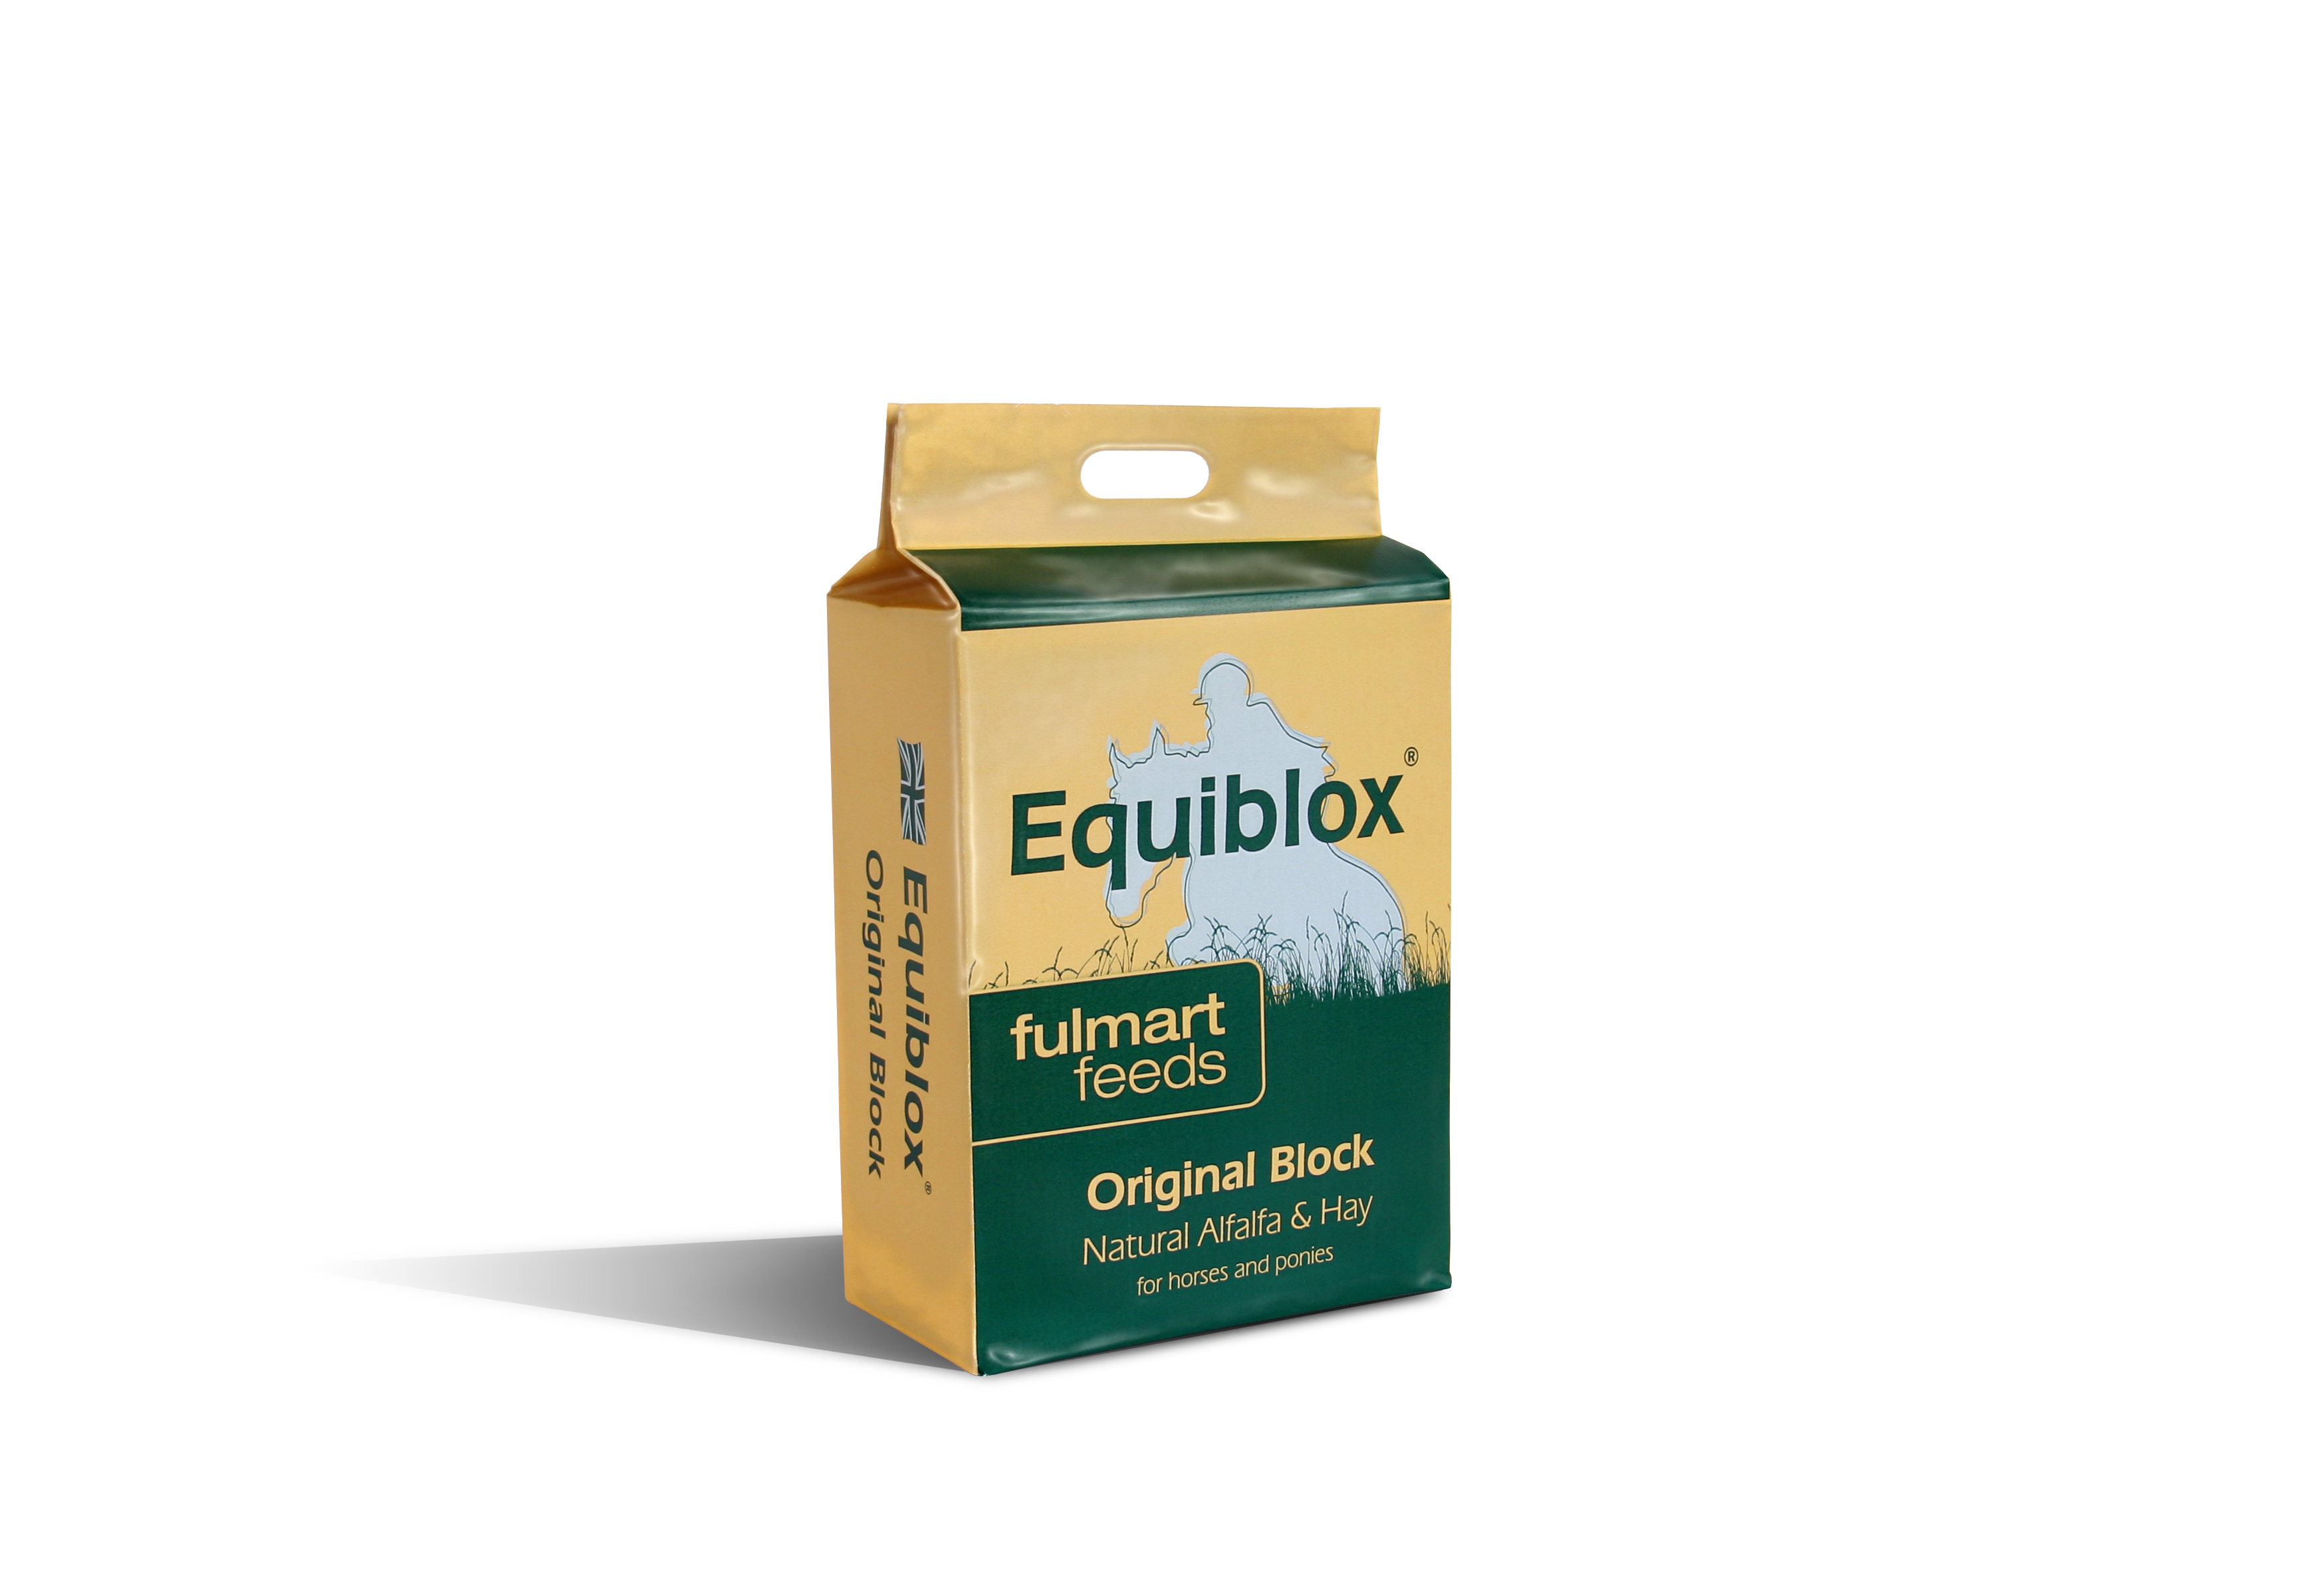 Equiblox Original image - Fulmart Feeds Launches EQUIBLOX